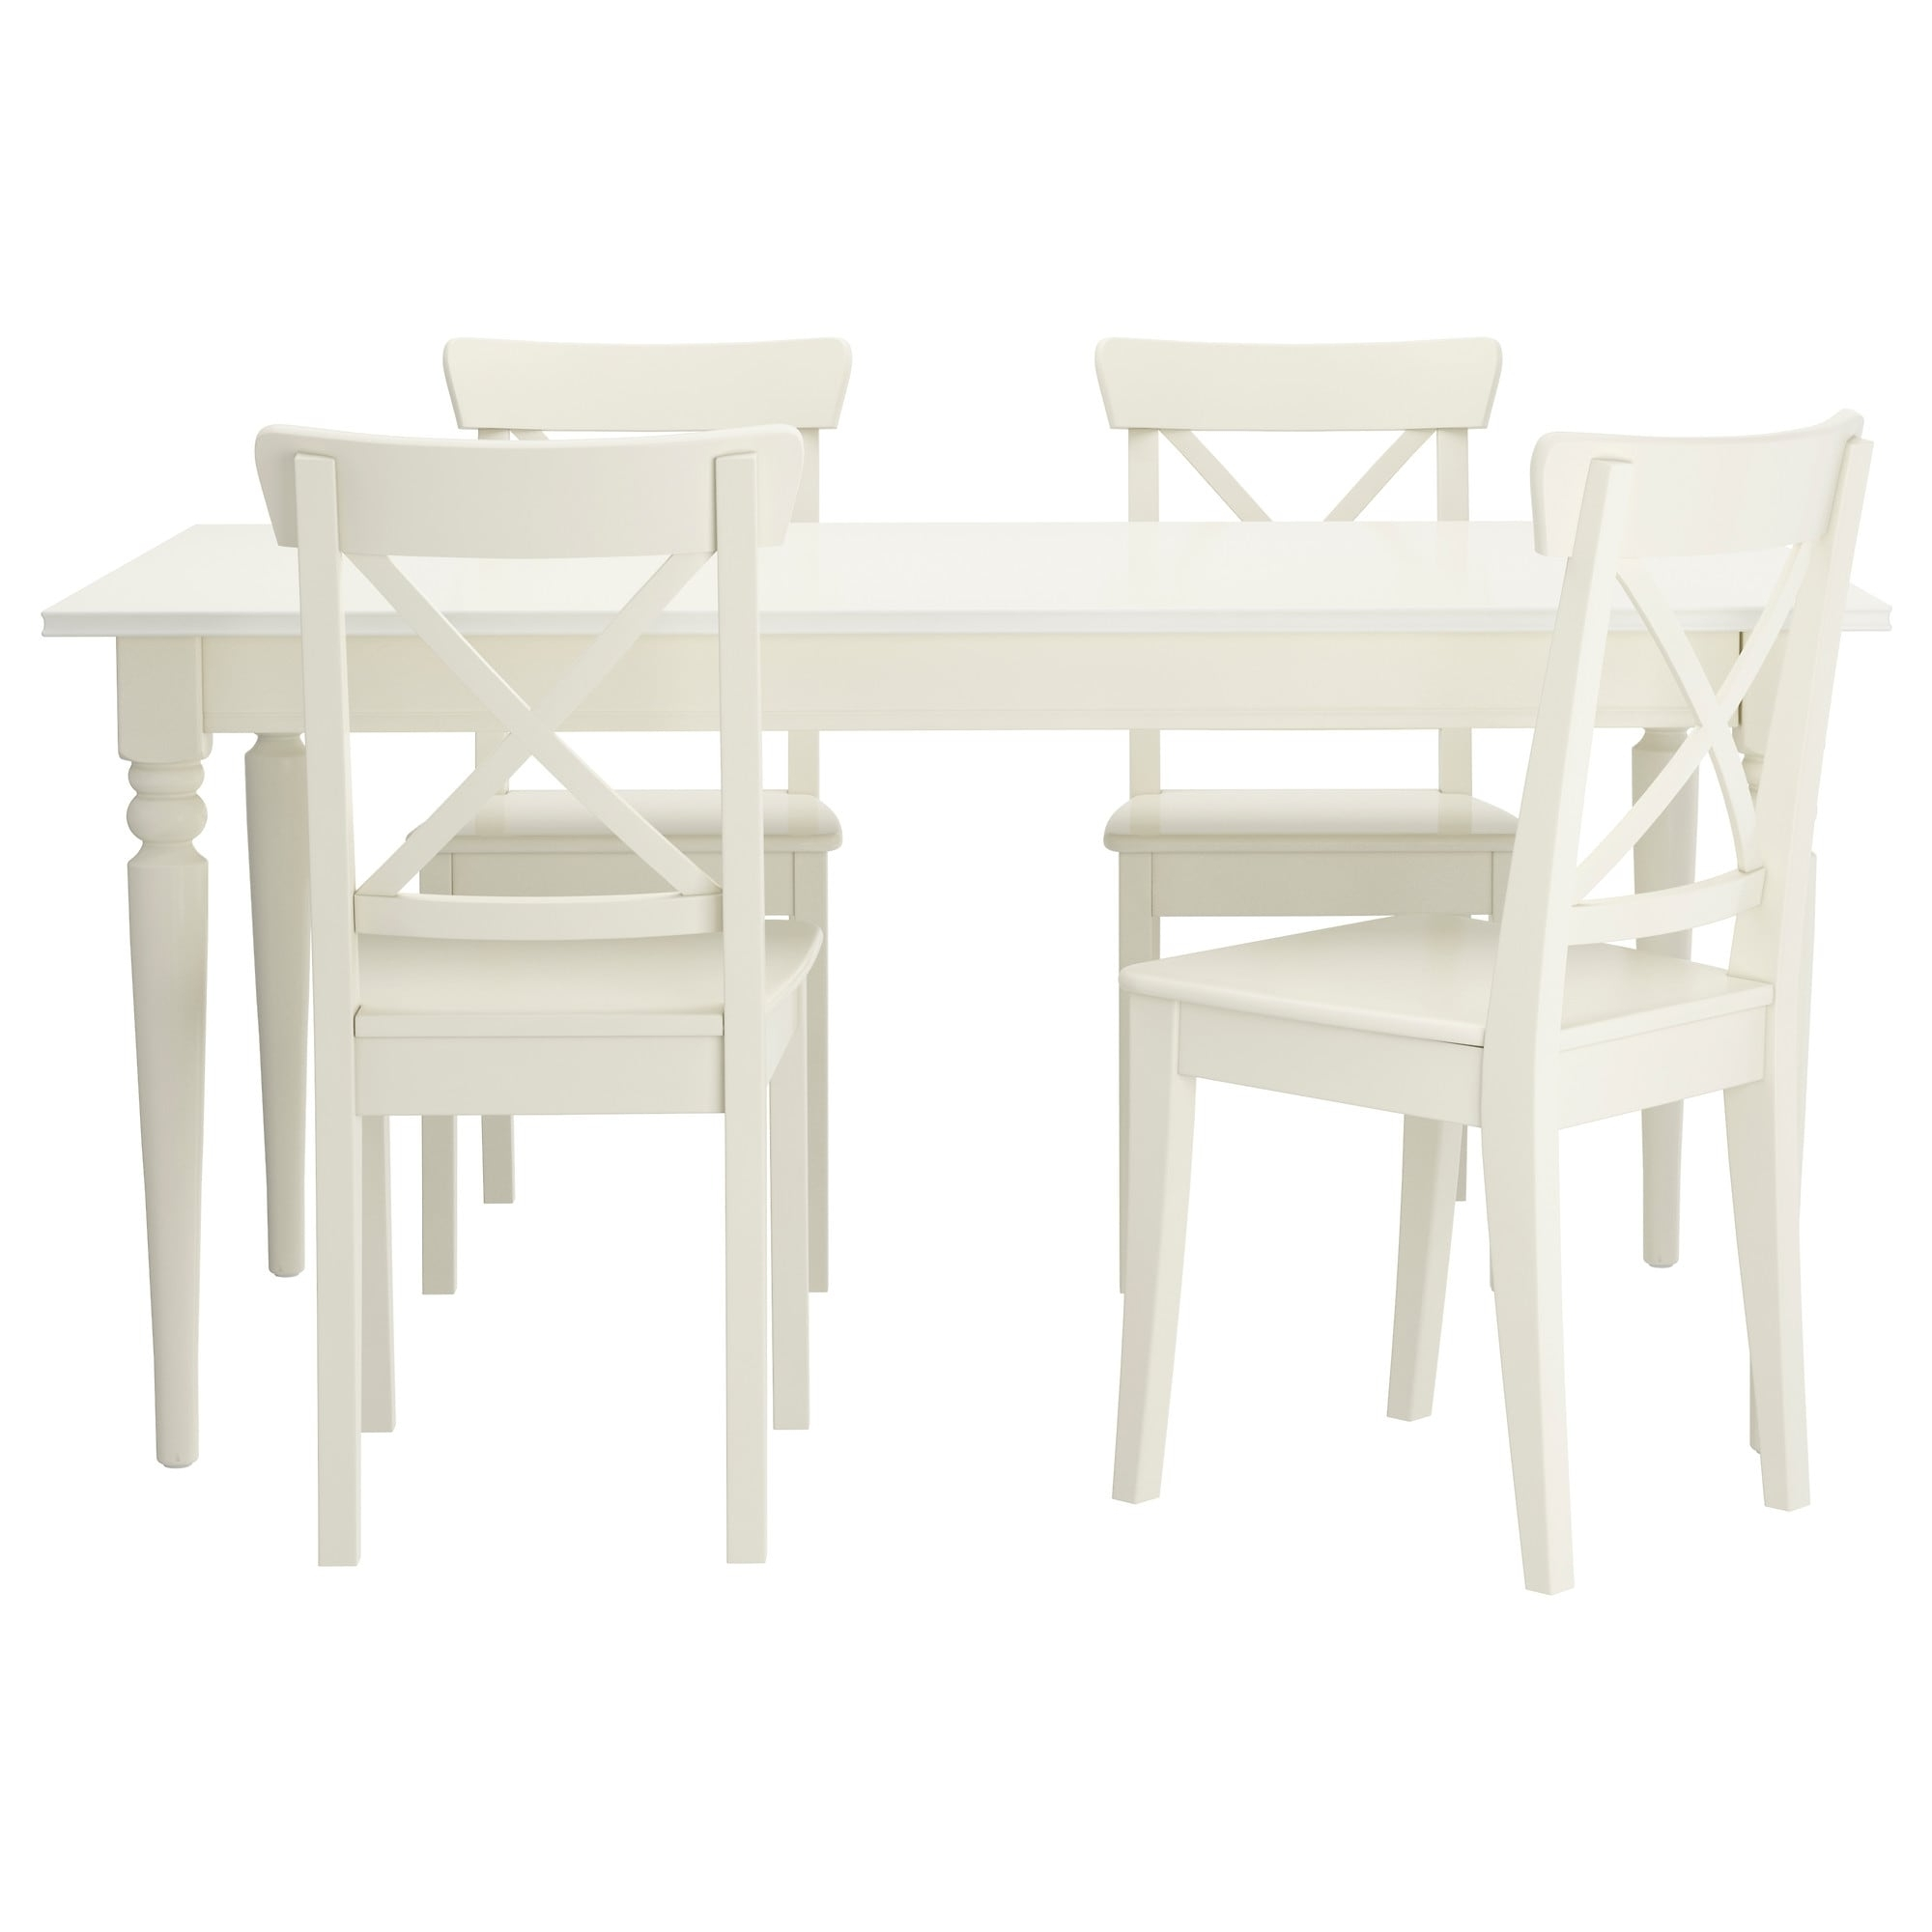 Most Recent Circular Dining Tables For 4 Within Dining Table Sets & Dining Room Sets (View 13 of 25)